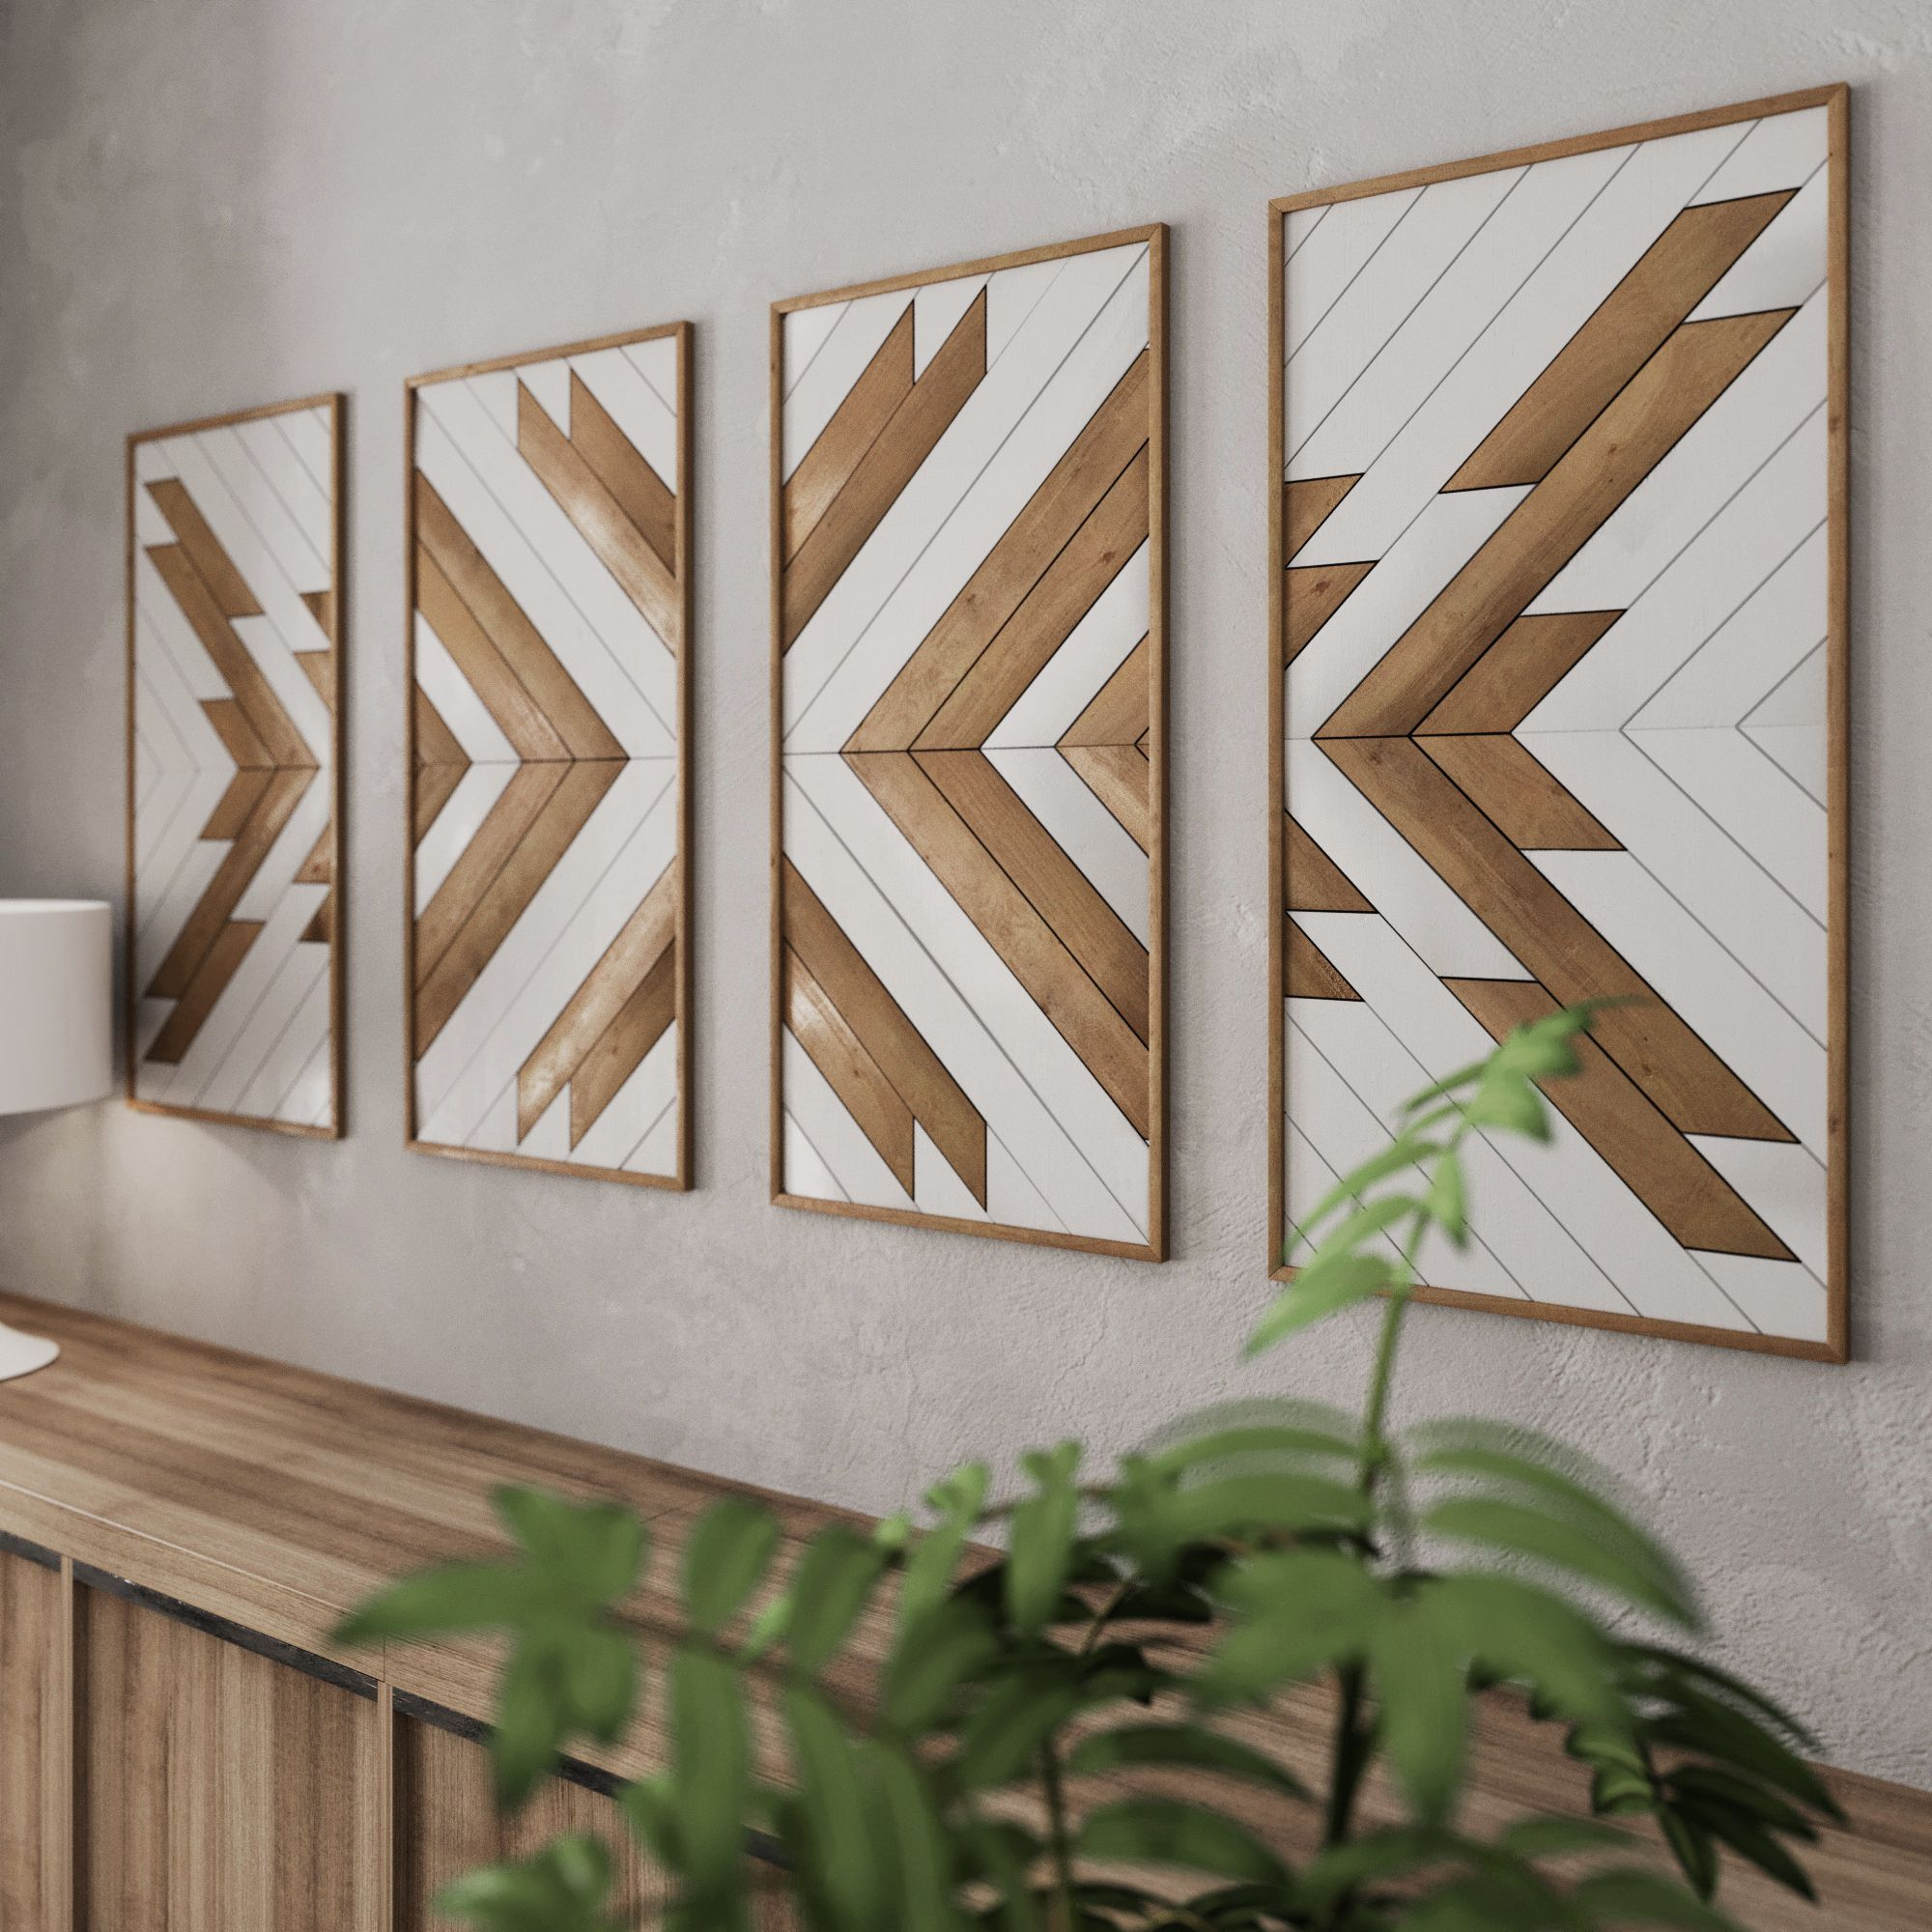 Native Pattern Wood Wall Art Set Large Wooden Wall Art Etsy Wood Wall Art Diy Rustic Wood Wall Art Large Wood Wall Art